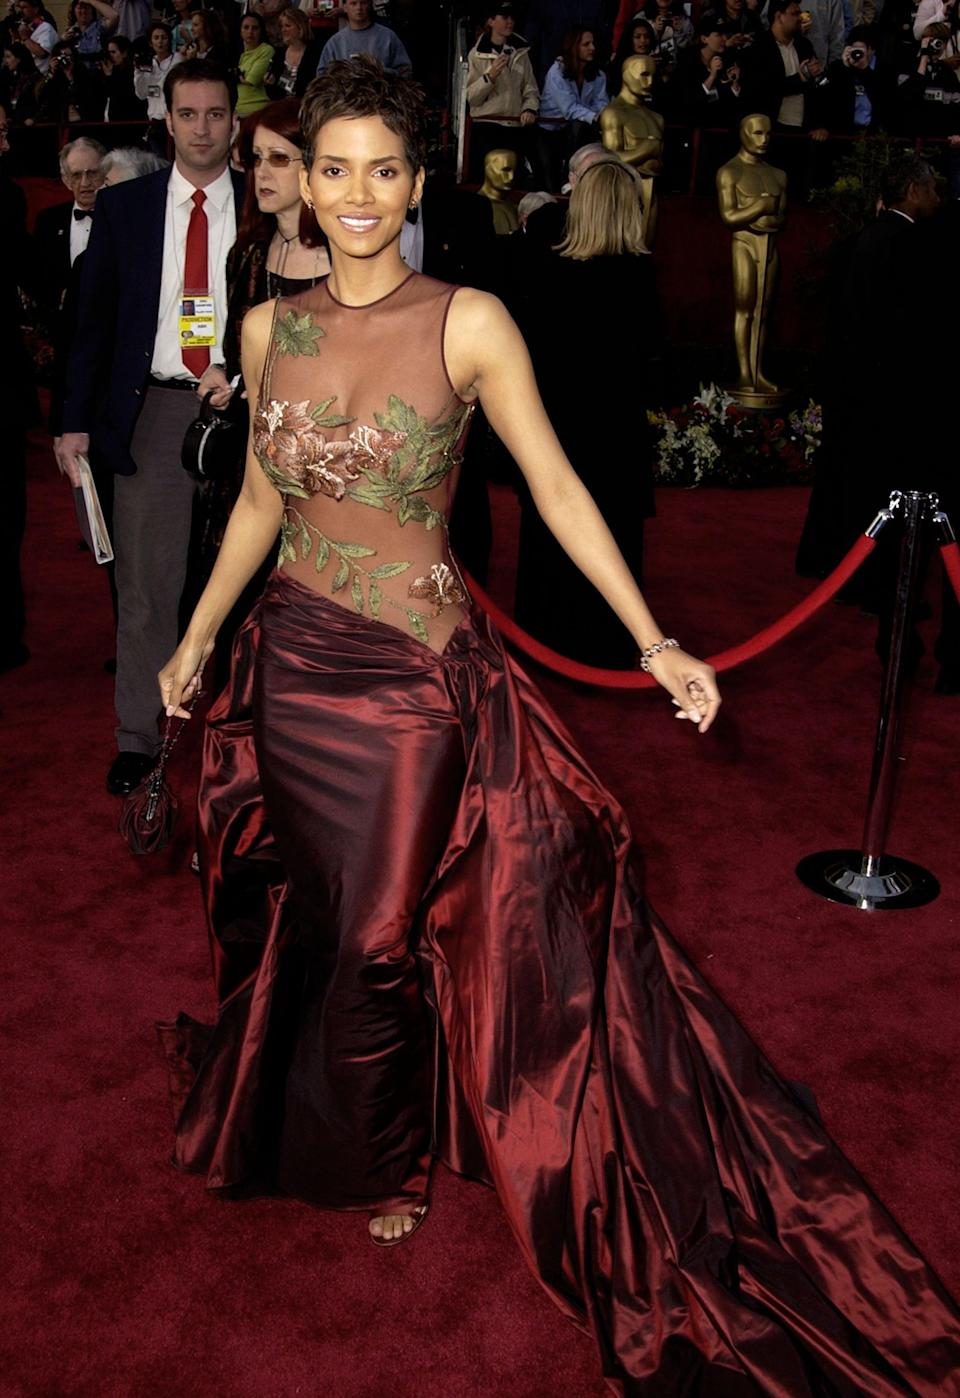 <p>Halle wore an Elie Saab gown with a sheer bodice and a full skirt to the awards in 2002, where she became the first black woman to win an Oscar for best actress in a leading role.</p>